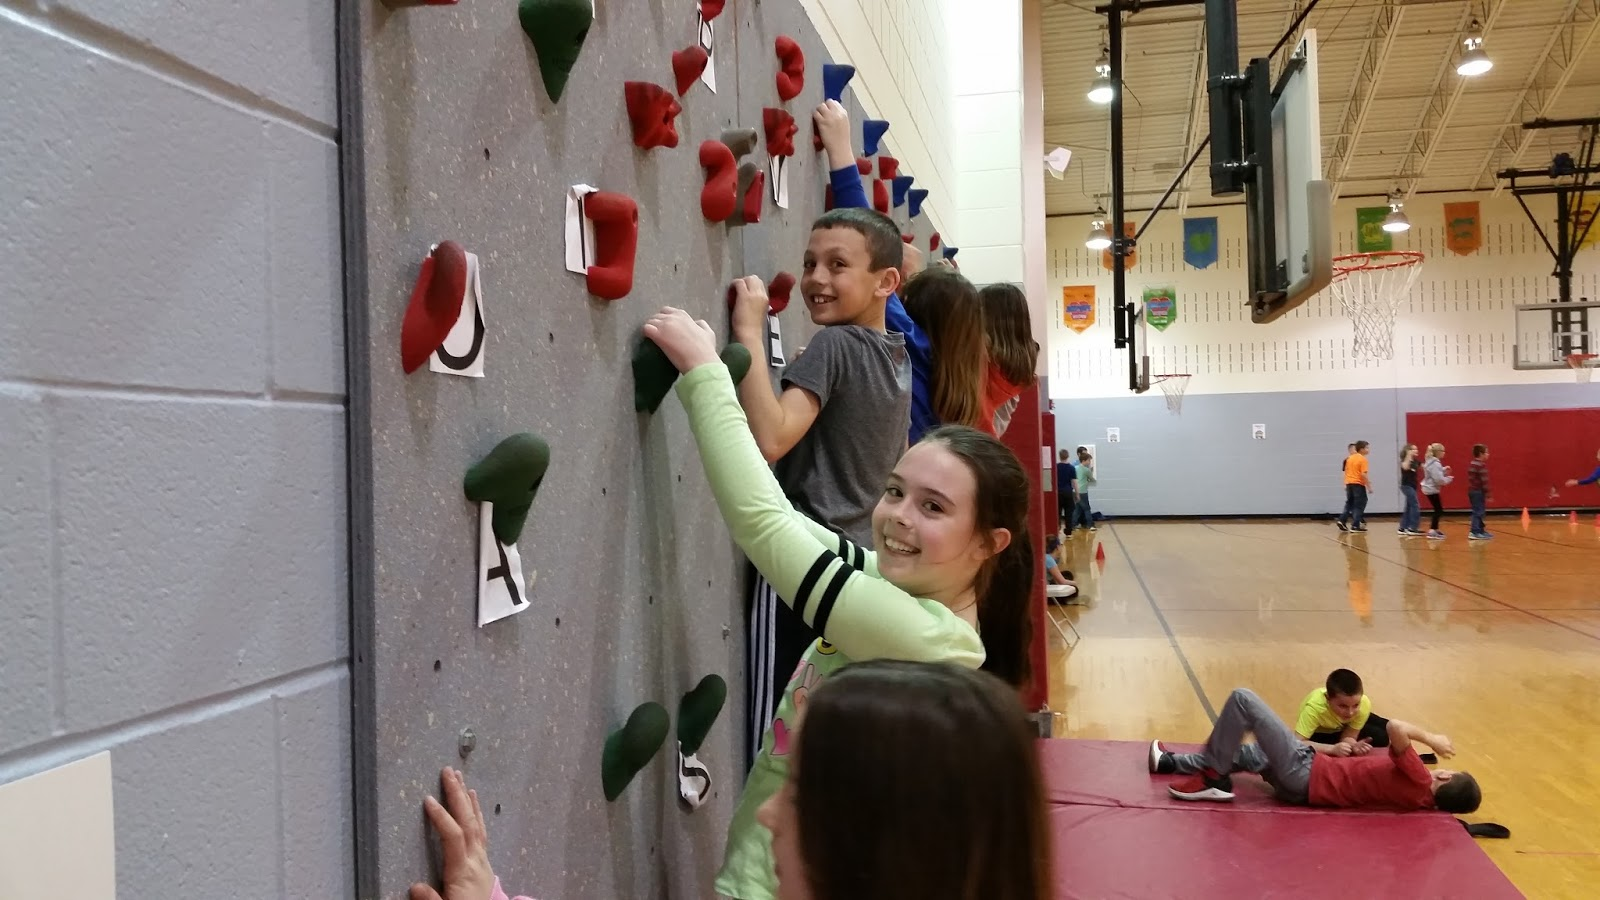 Learn What Are the Actions of Self Help in Climbing